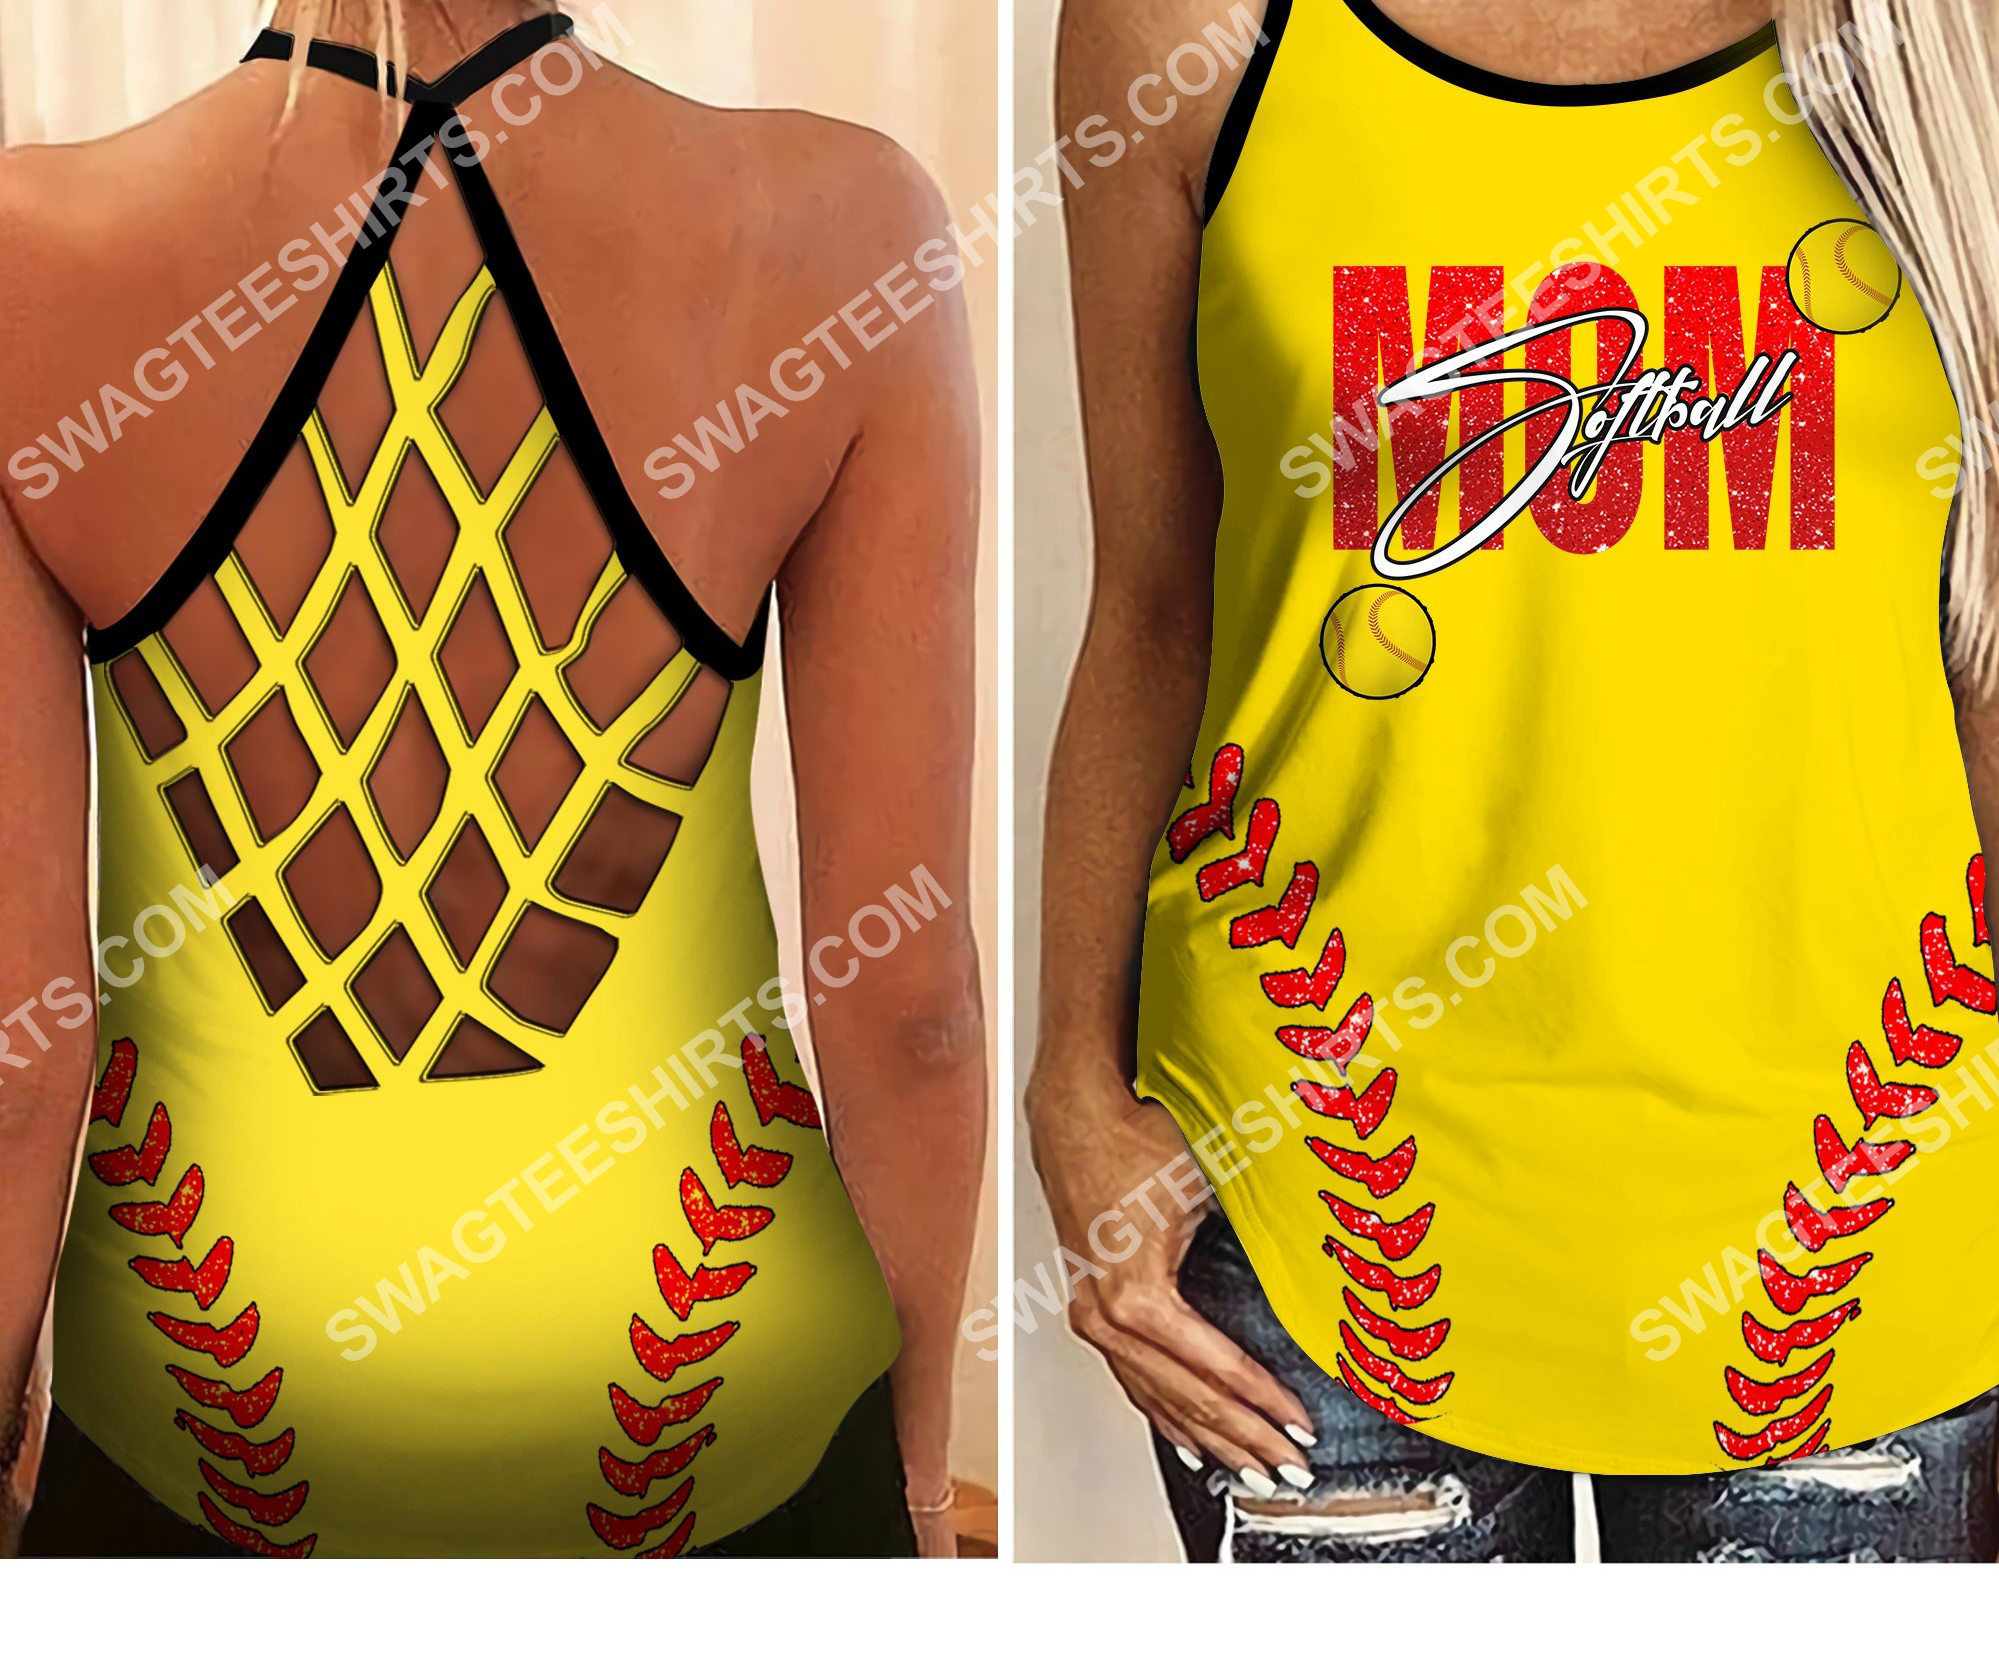 mom softball all over printed criss-cross tank top 2 - Copy (2)